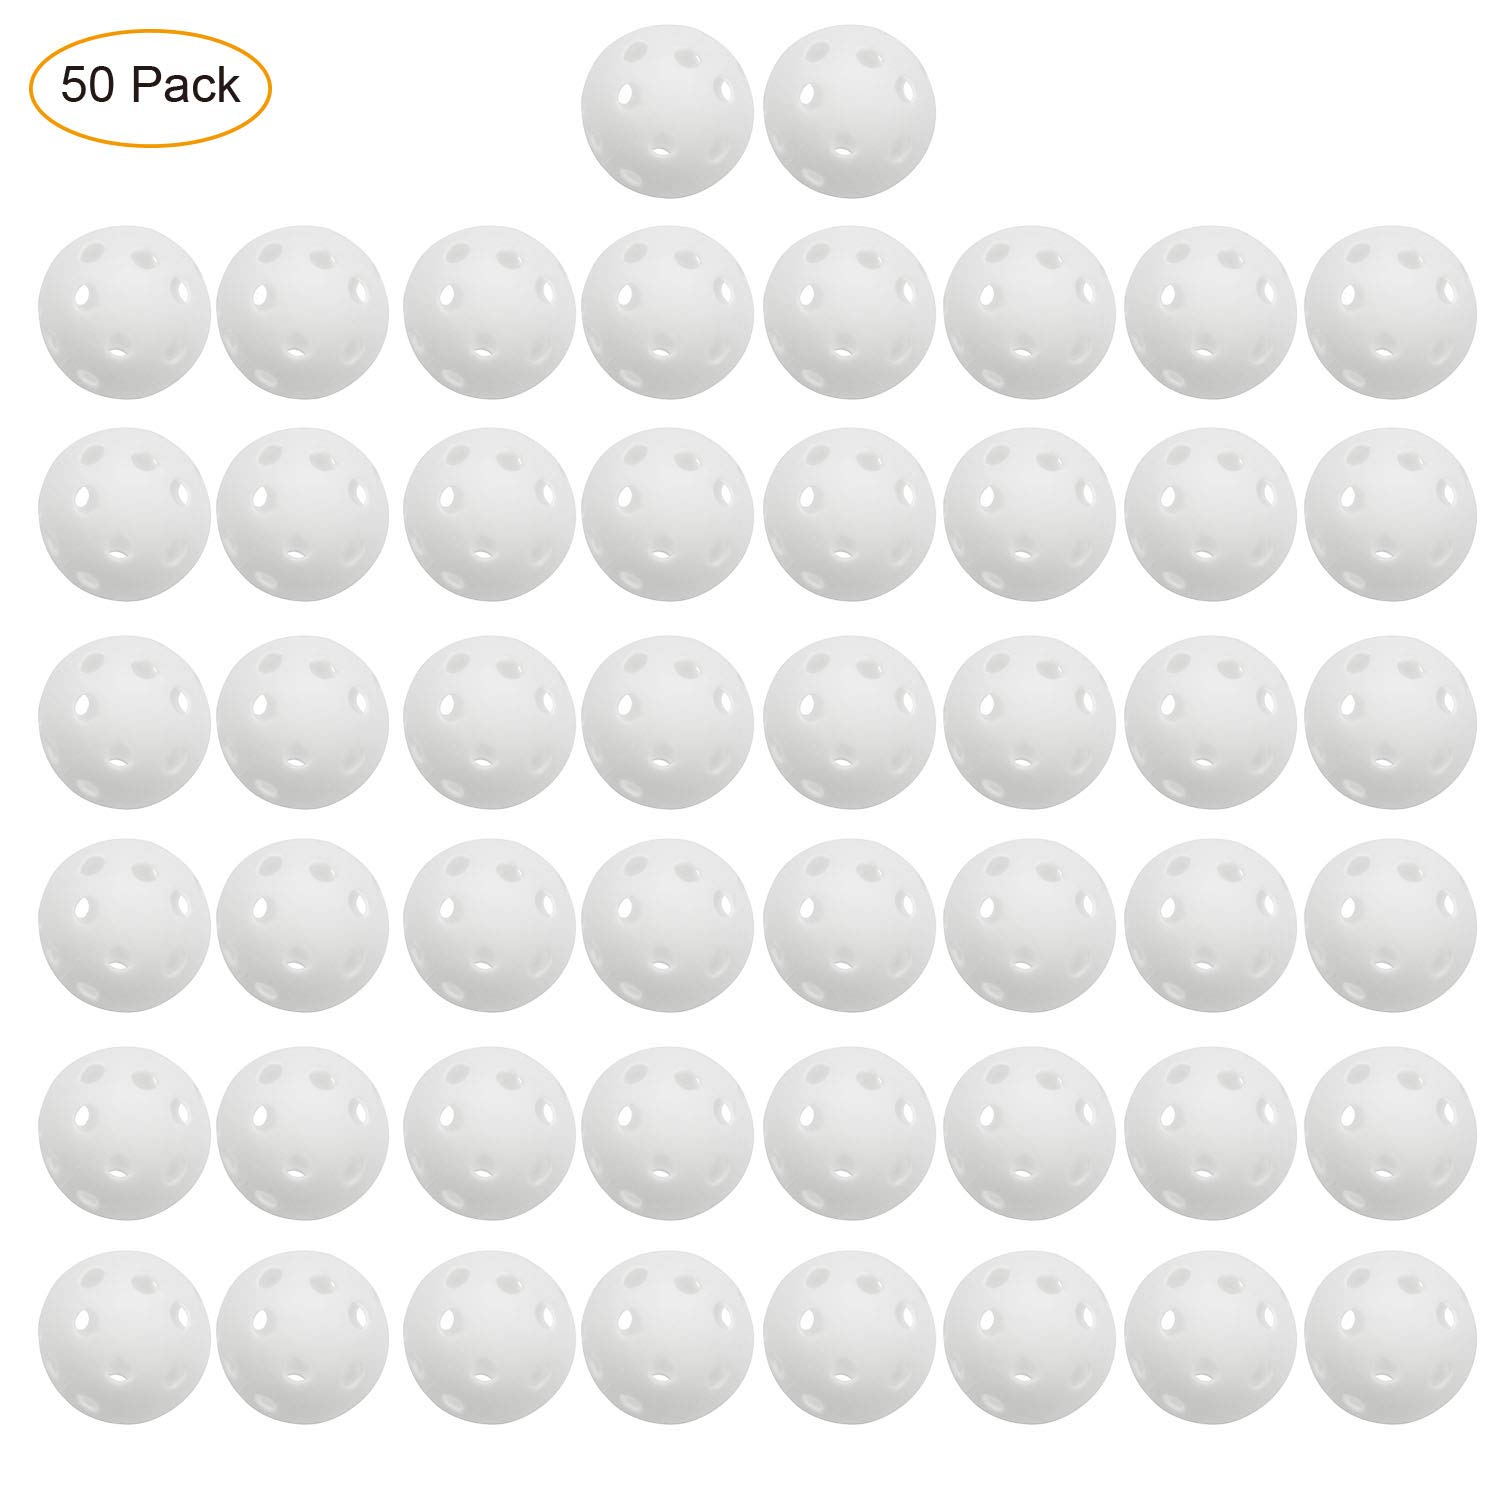 Fantaxdic 50 Pack Plastic Golf Training Practice Balls by Fantaxdic